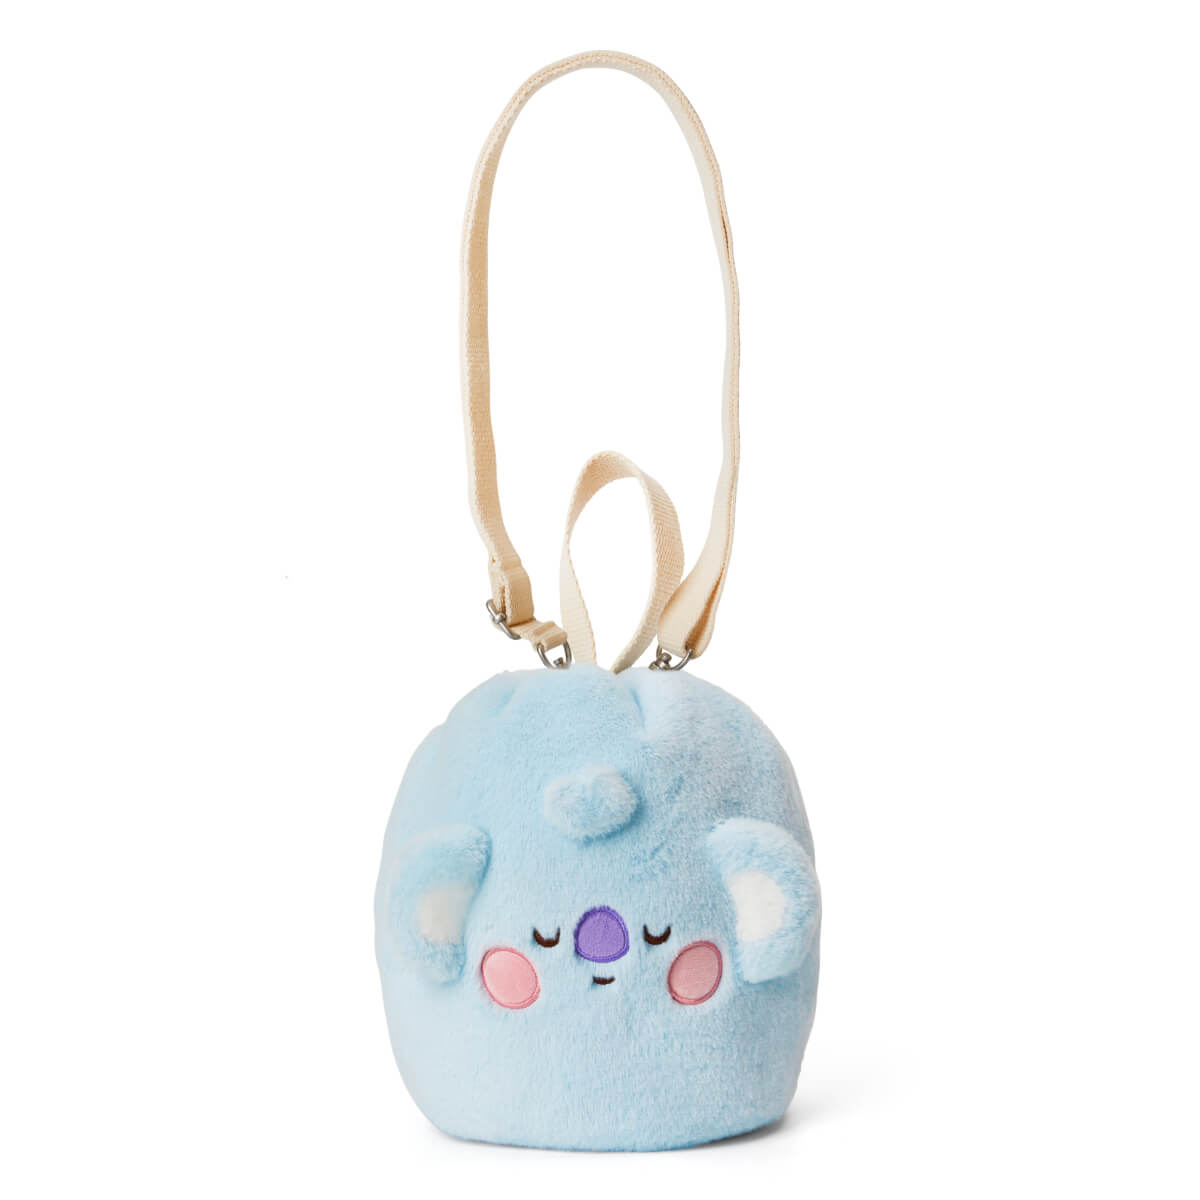 BT21 KOYA Dream of Baby Fluffy Bucket Bag